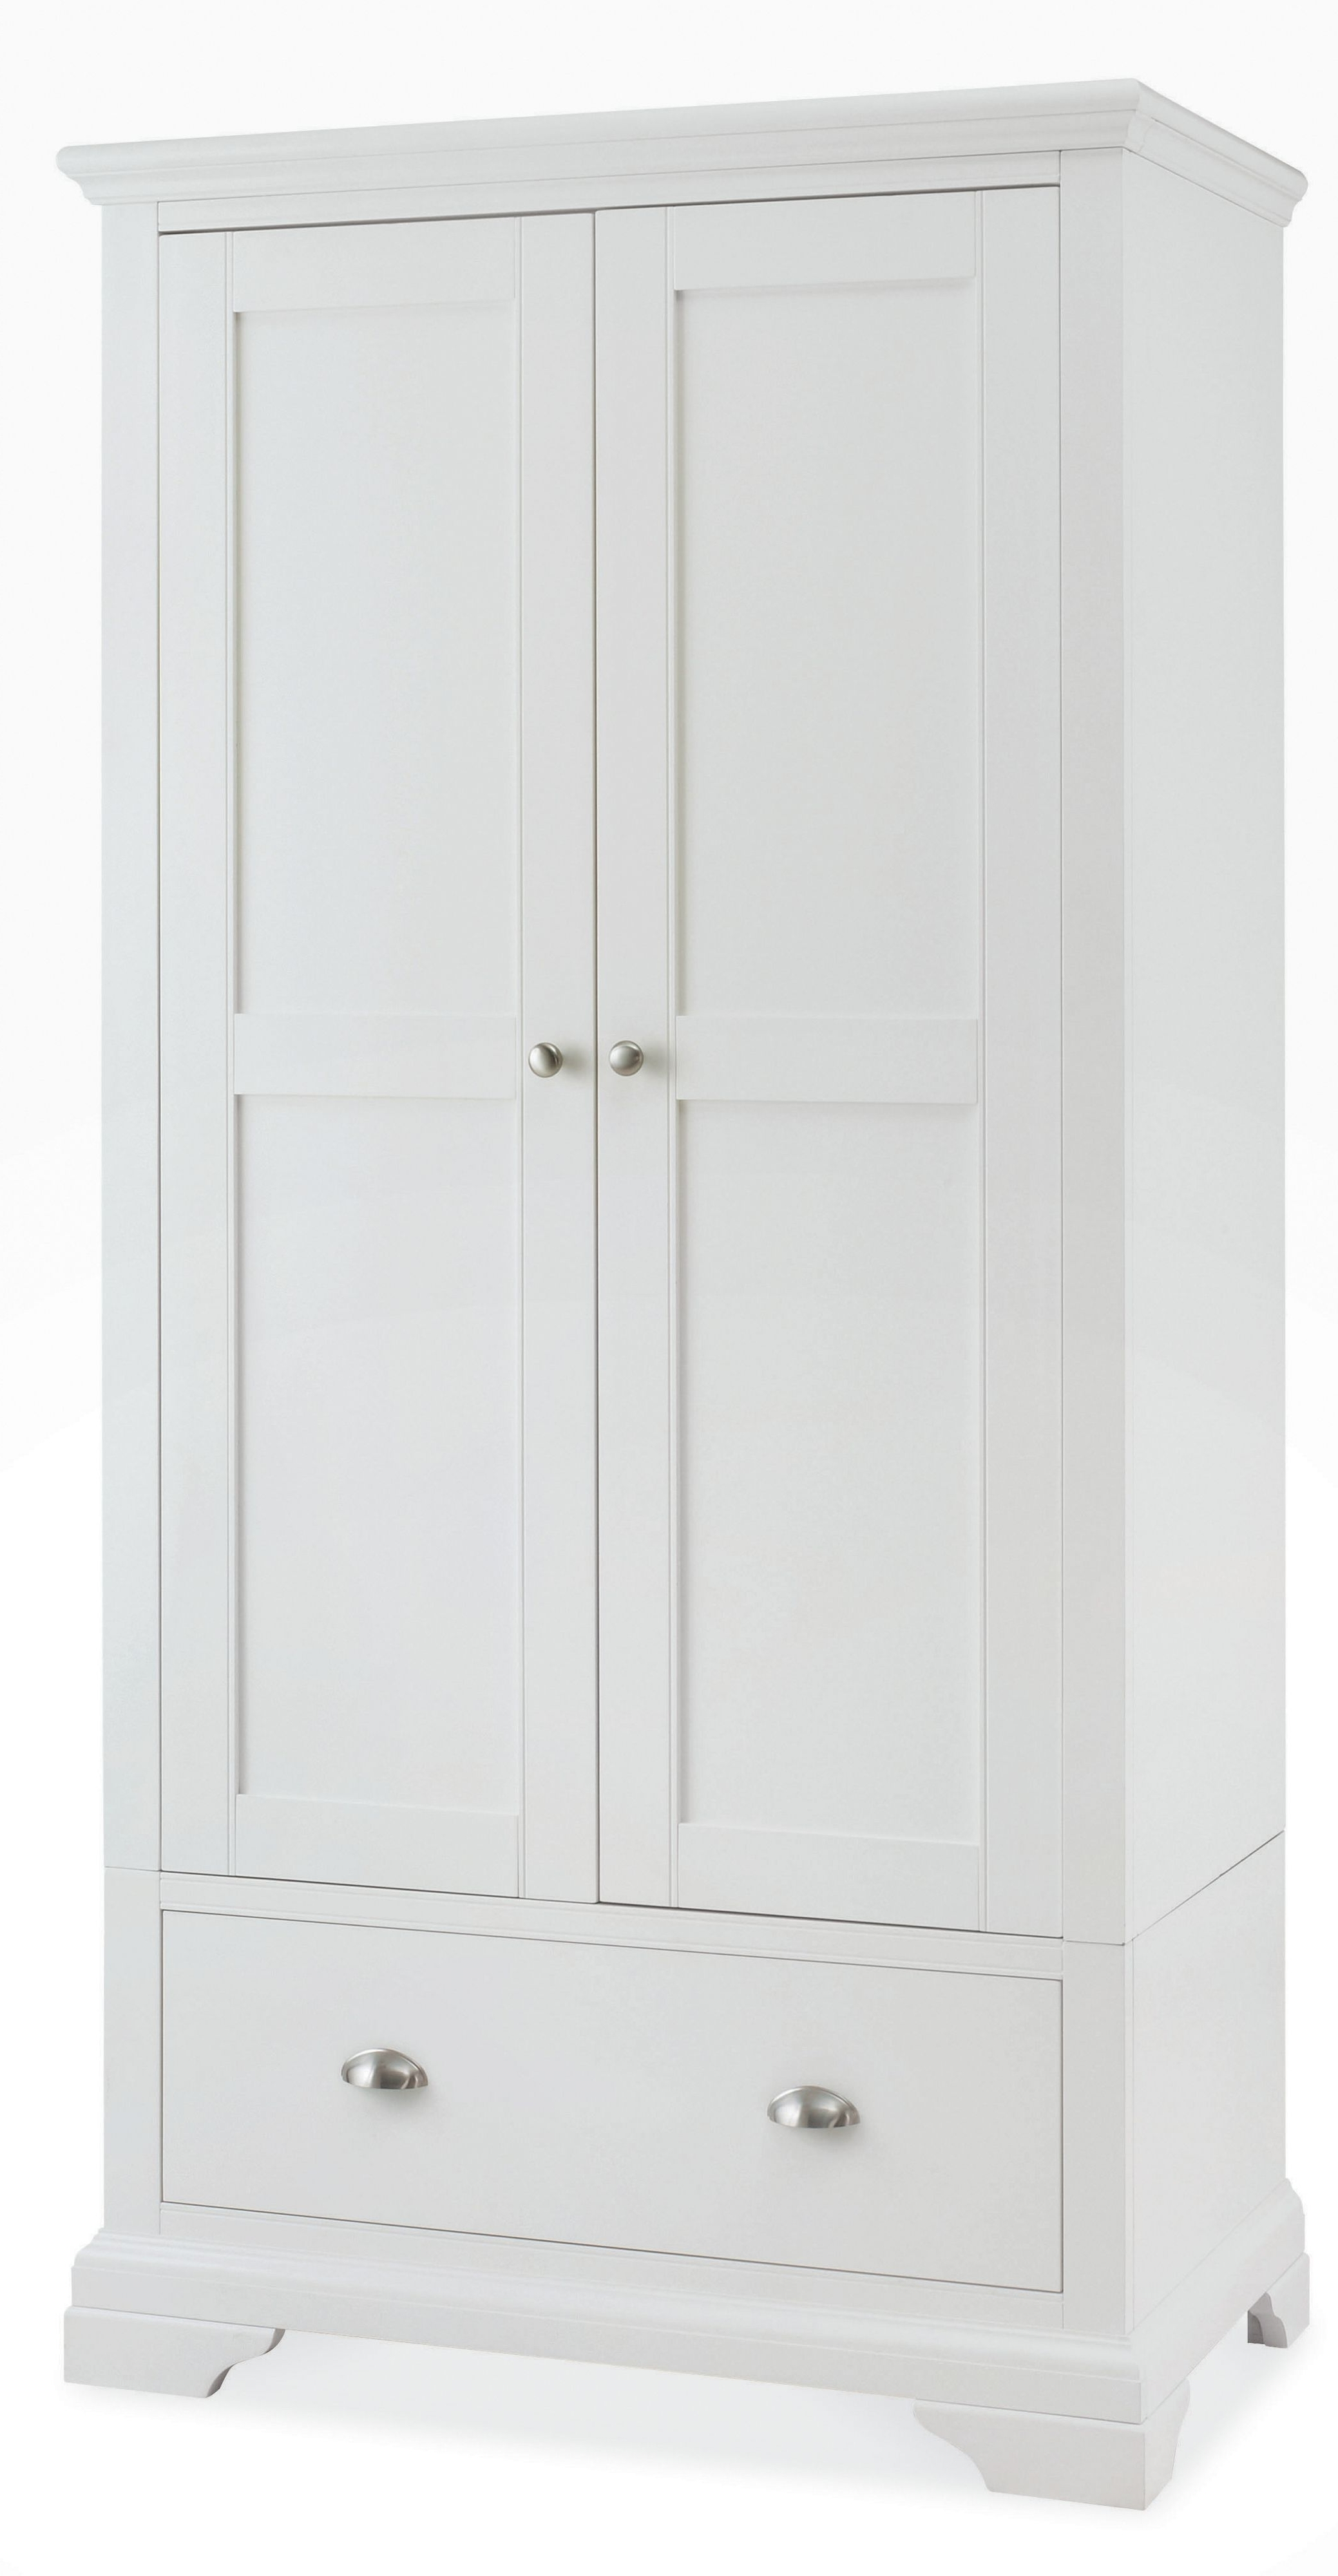 Single White Wardrobes For Most Popular Vintage White Wooden Wardrobe With Inside Shelves And Numerous (View 15 of 15)